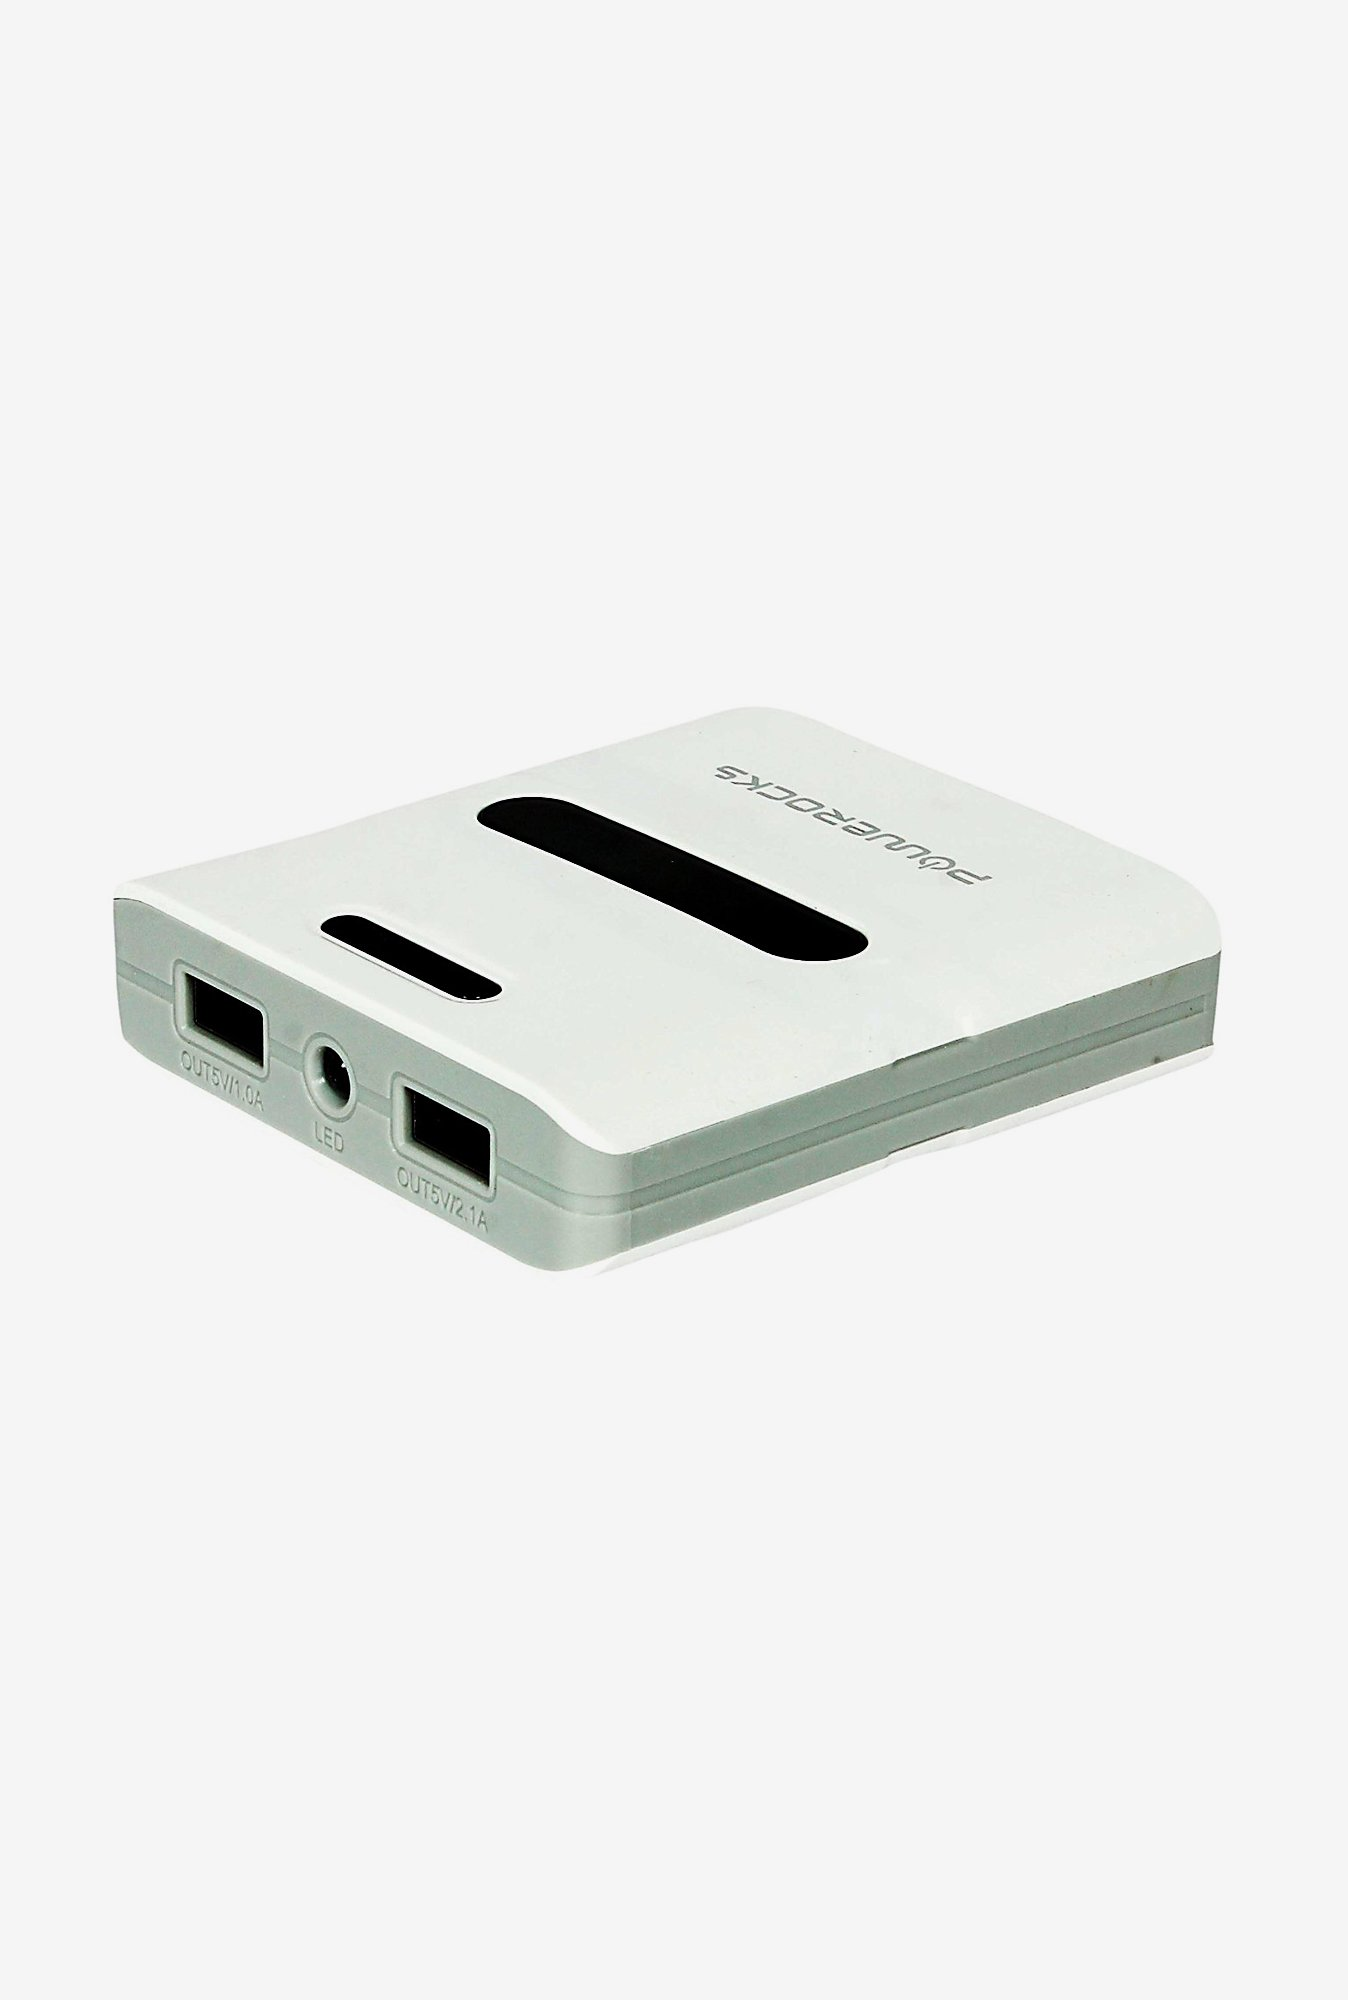 Powerocks Trump 100 10000mAh Power Bank (White & Grey)